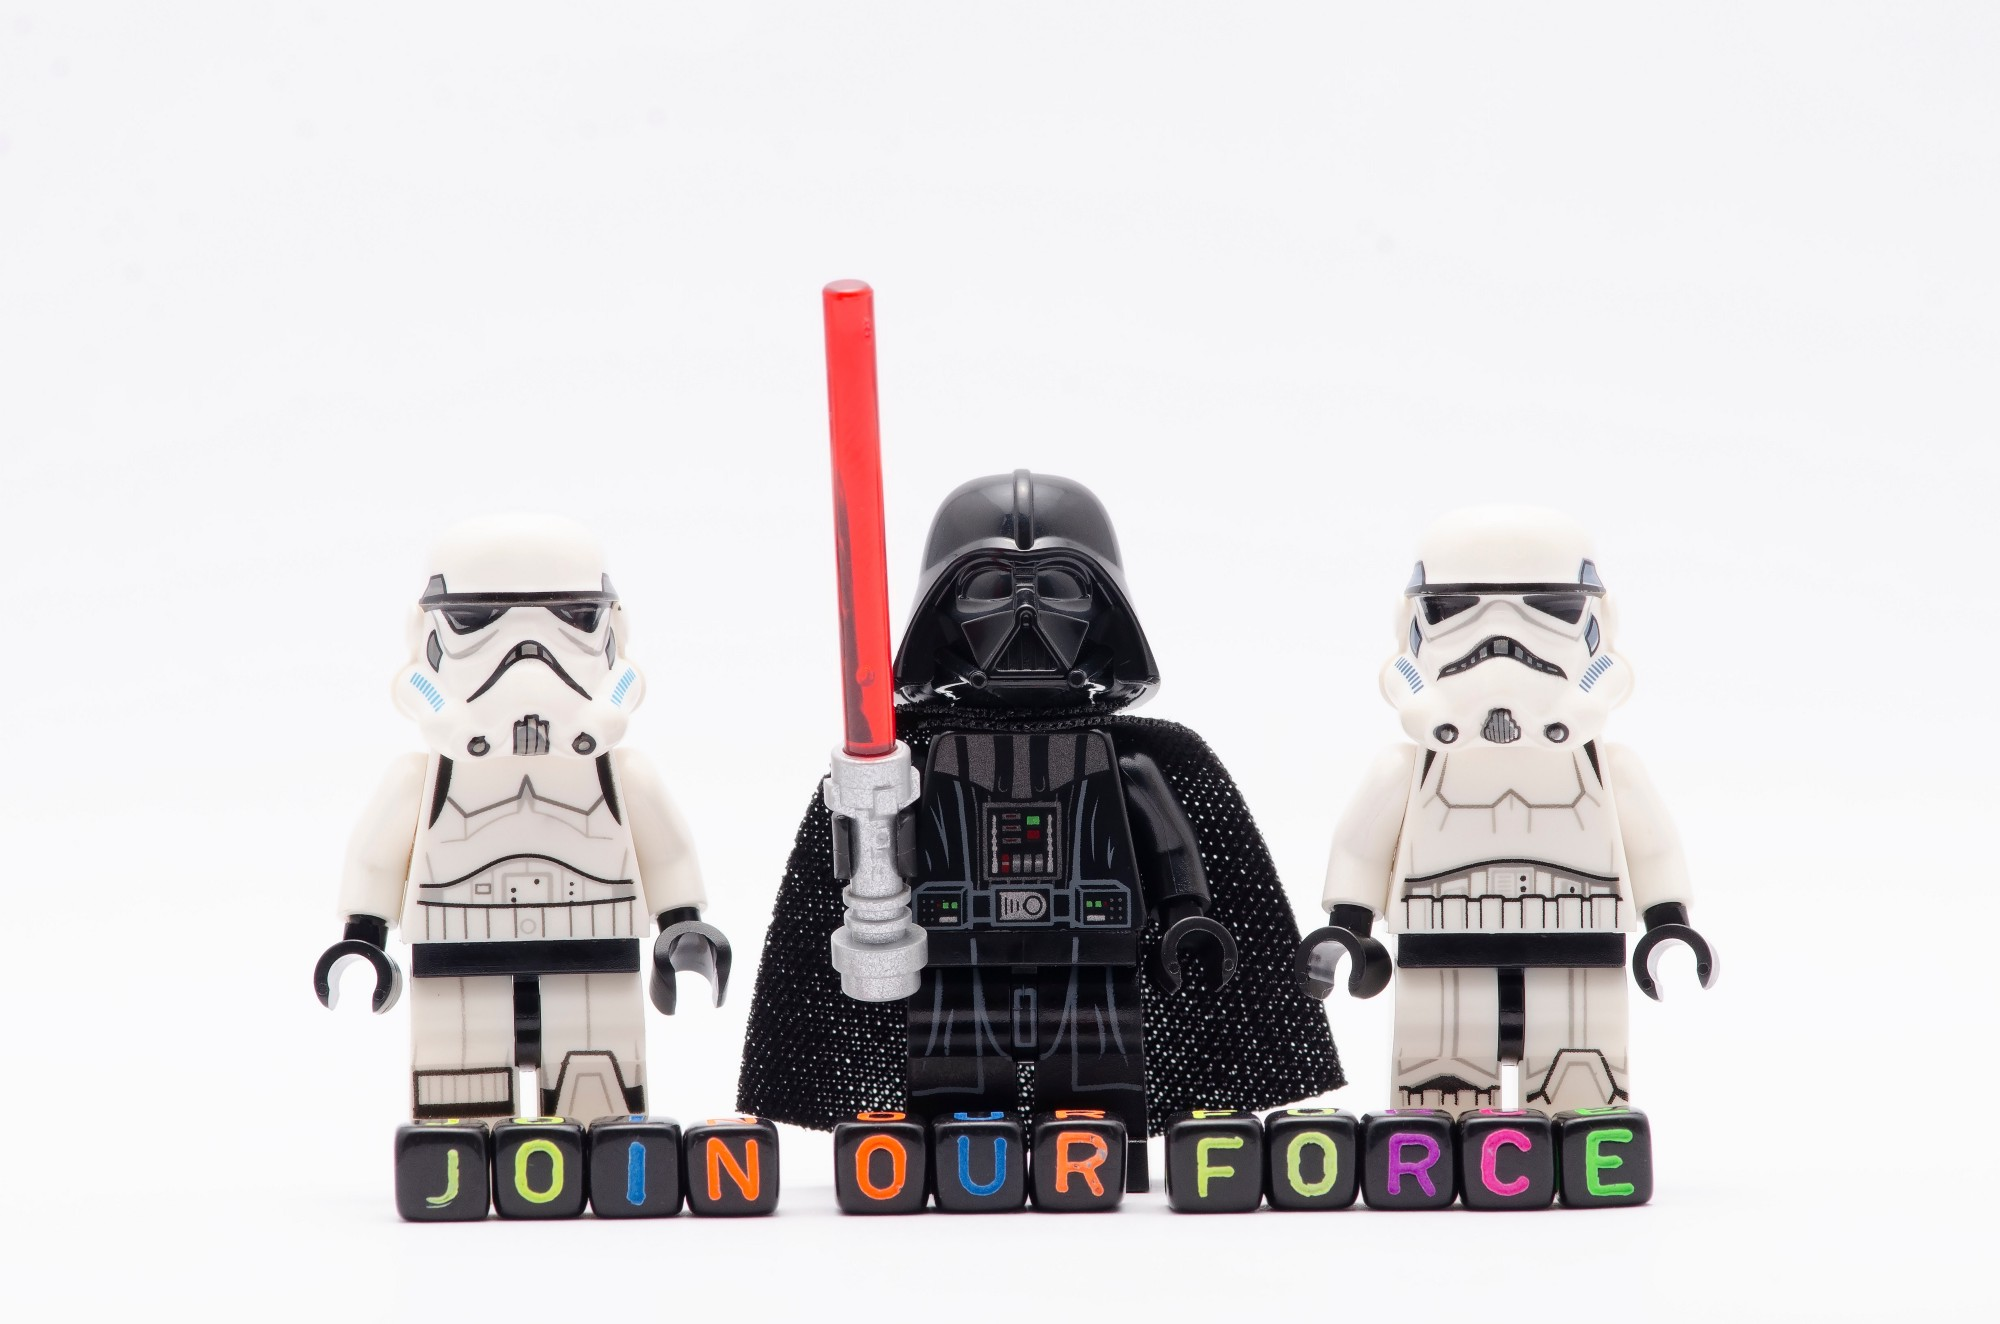 Lego star wars figurines with the description 'Join the force'